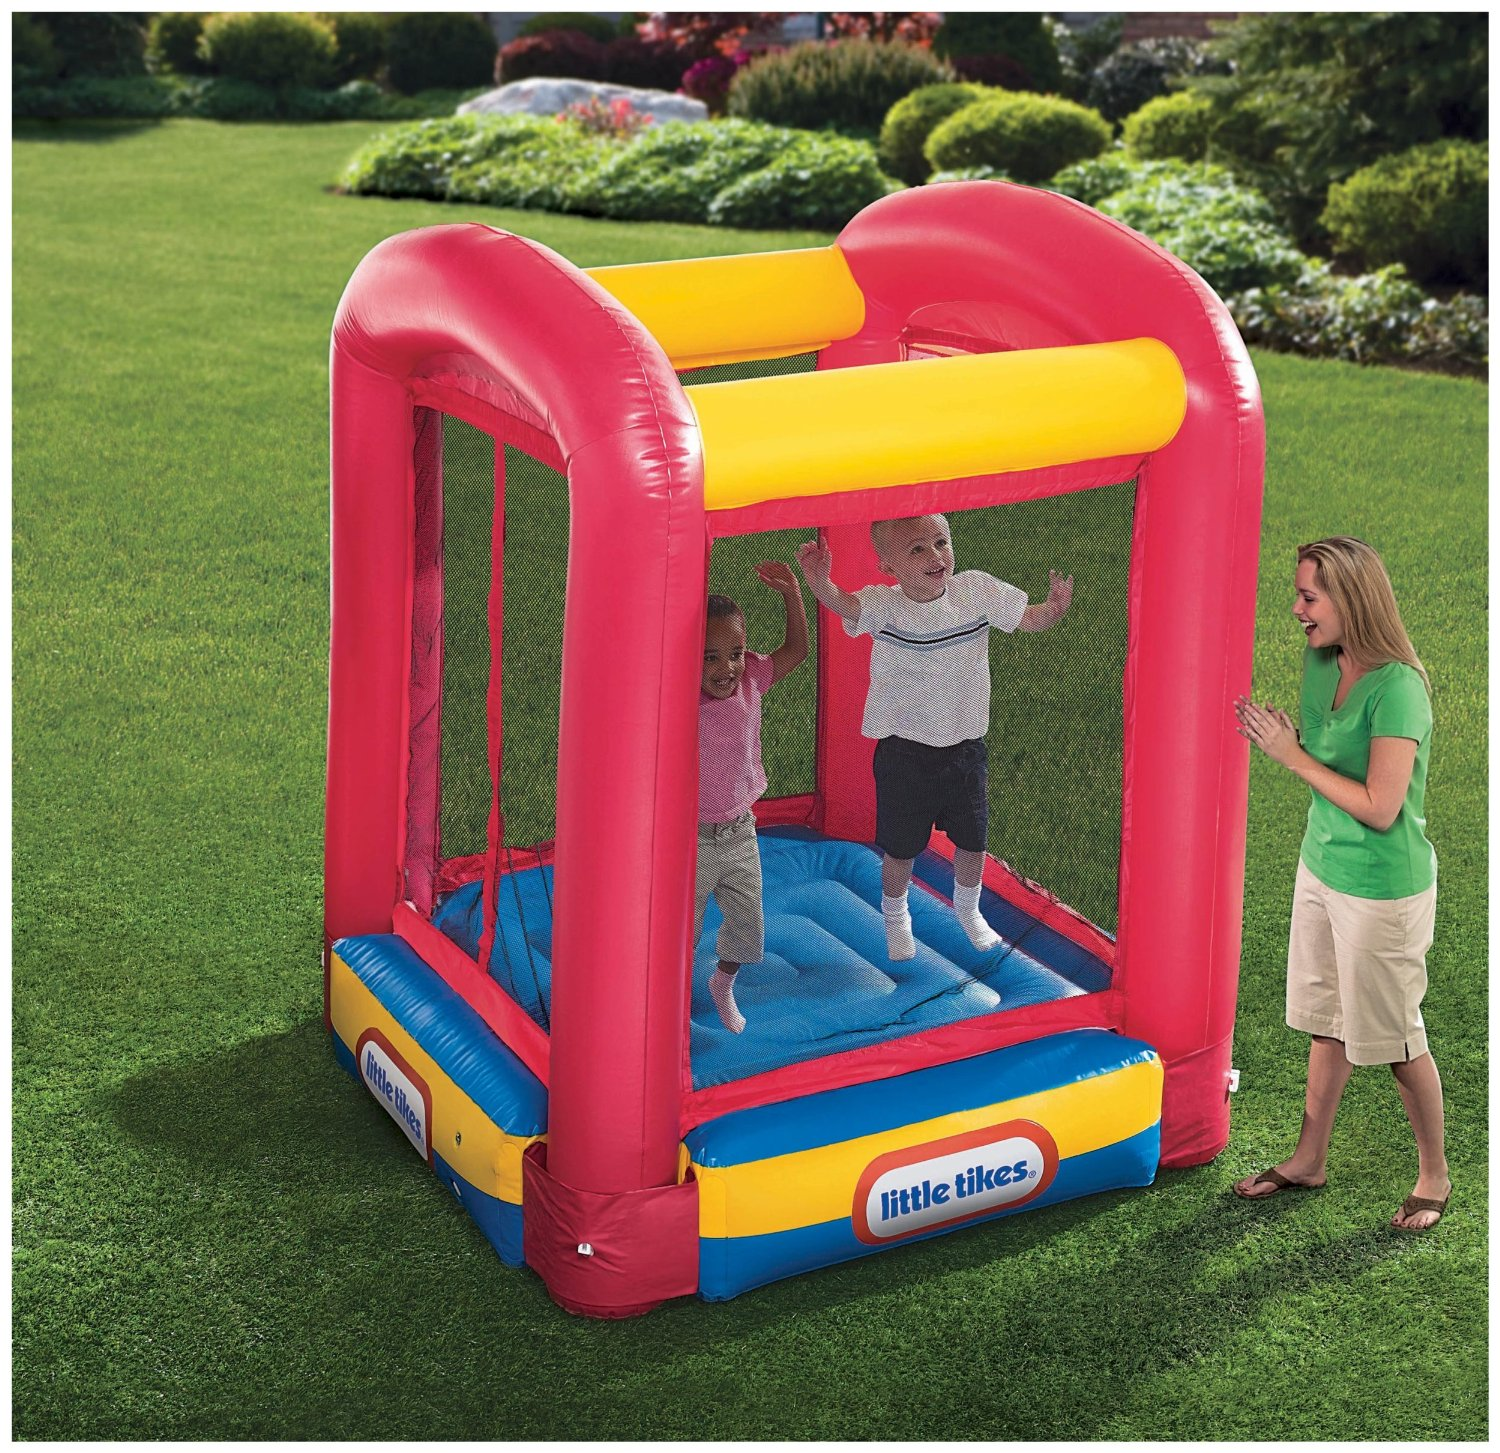 Wonderful Little Tikes Bounce House Made Of Caoutchouc In Pink Blue Yellow For Play Yard Ideas